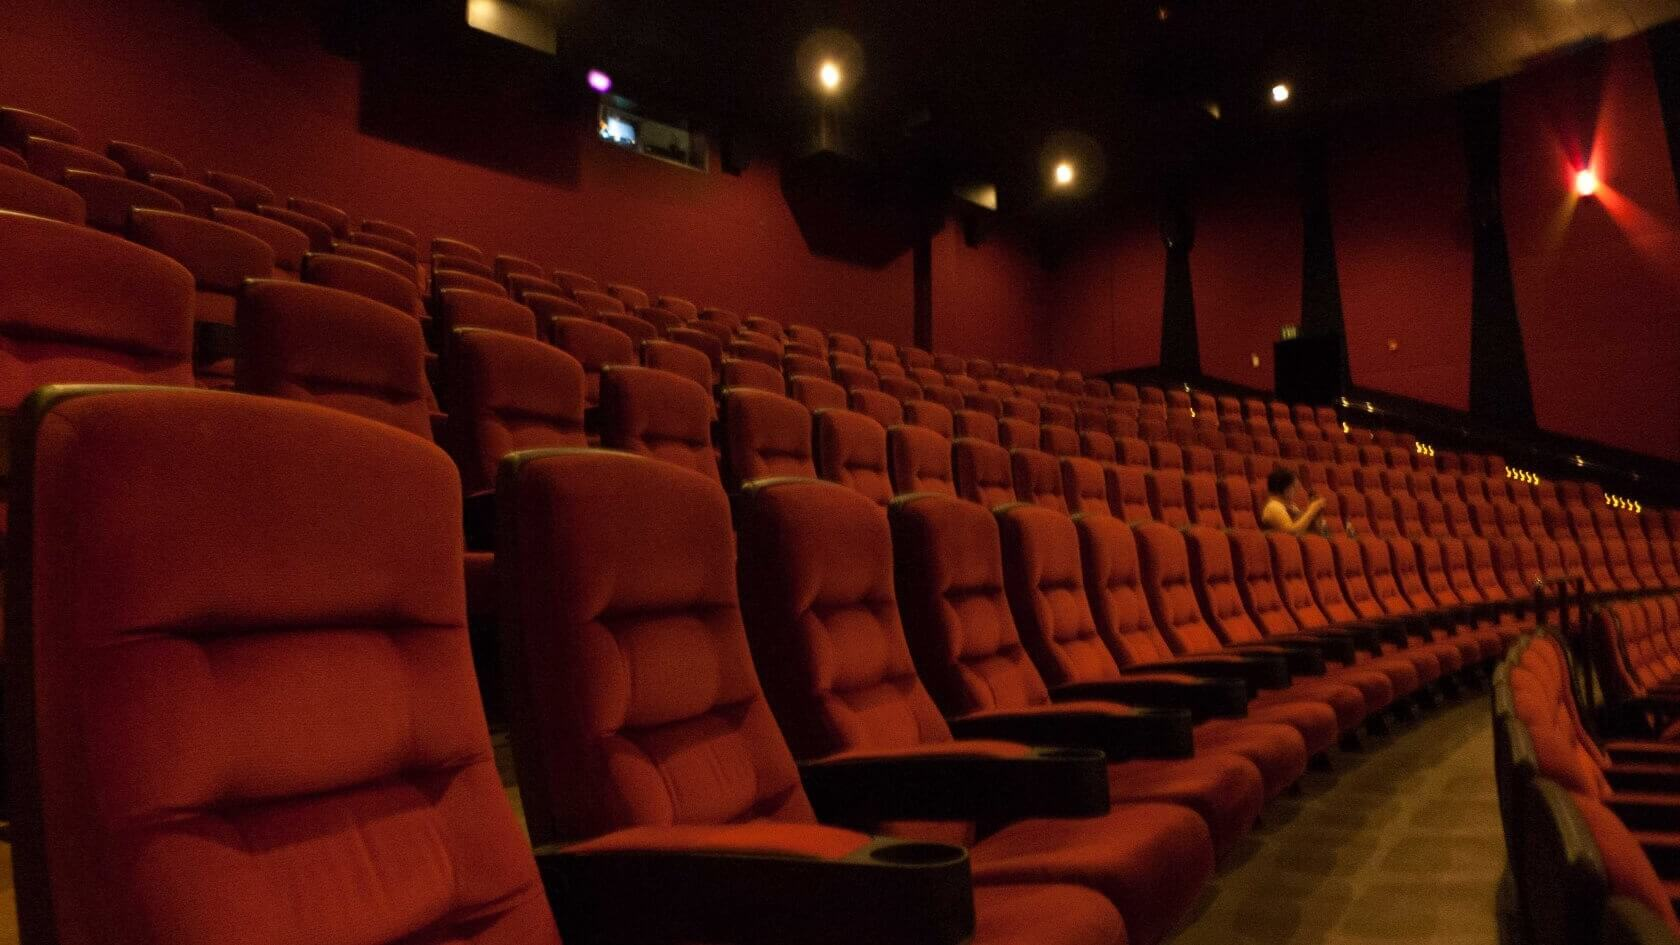 Sinemia drops the price of its cheapest monthly movie ticket plan to $3.99 for weekday showings